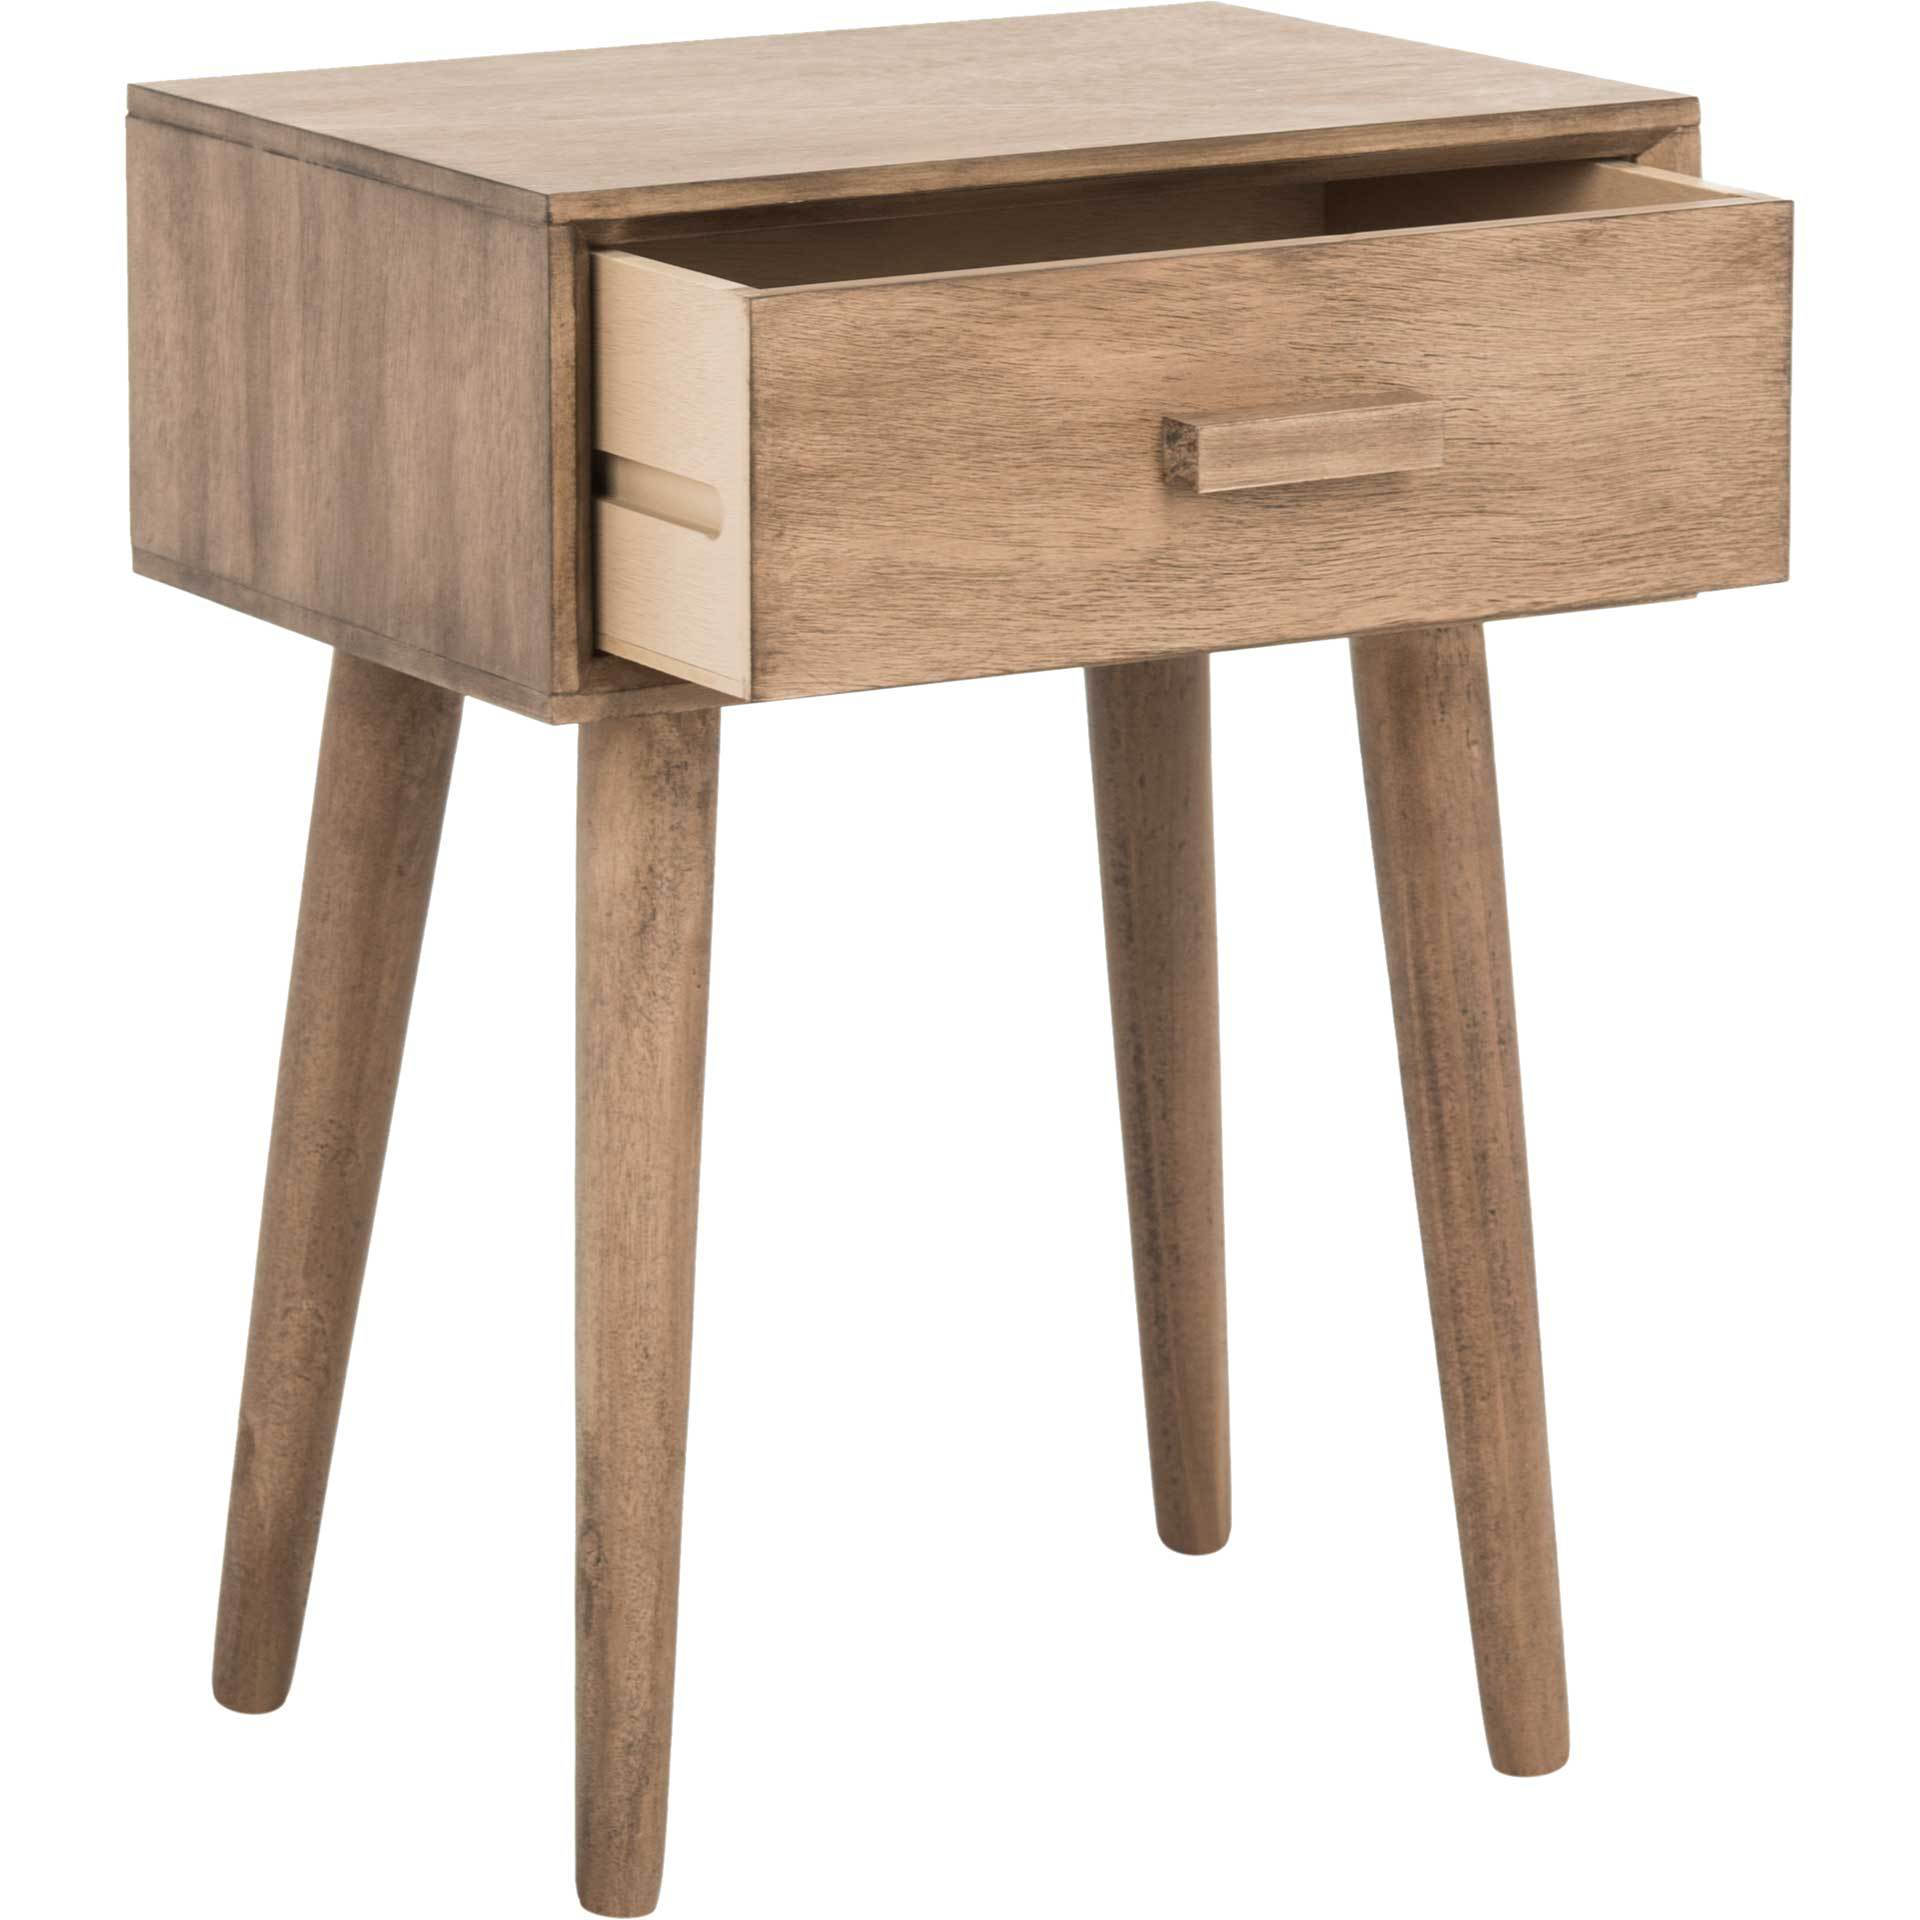 Lylah Accent Table Desert Brown